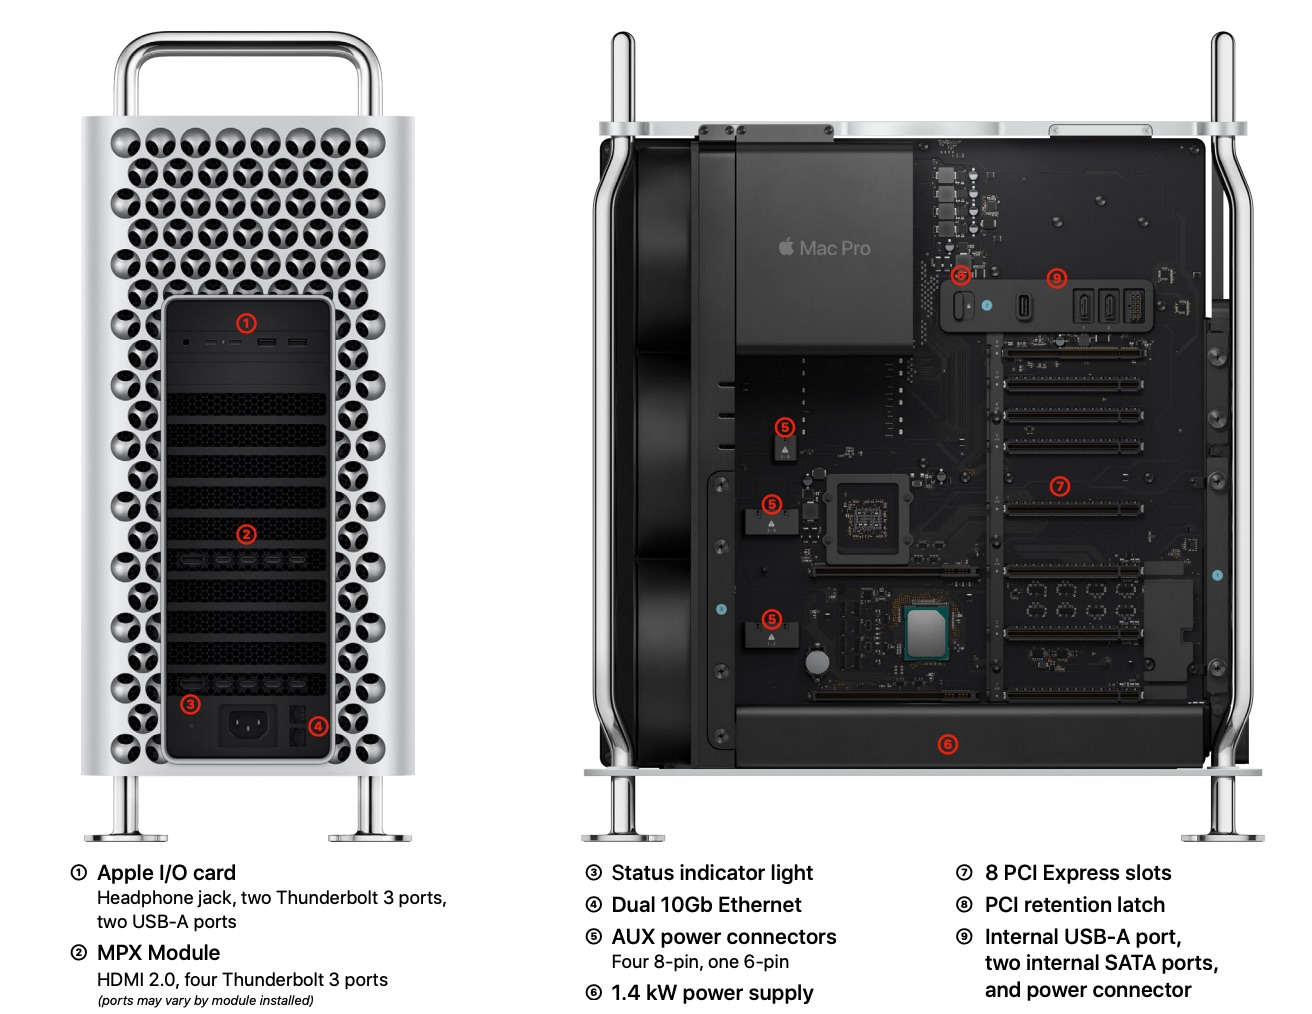 Apple Shares Detailed 'Technical Overview' White Papers of Pro Display XDR and Mac Pro